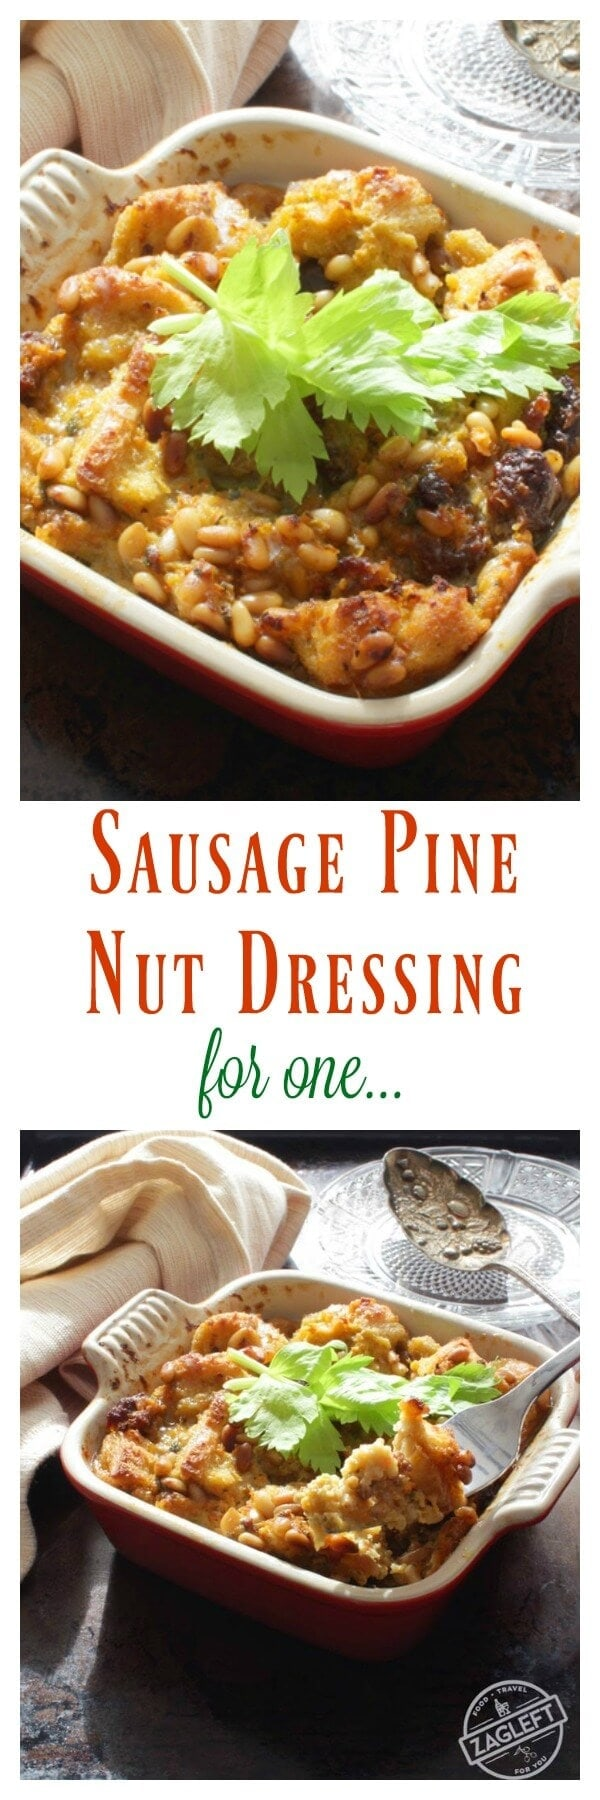 Sausage Pine Nut Dressing For One | Visit www.onedishkitchen.com for other single serving recipes.